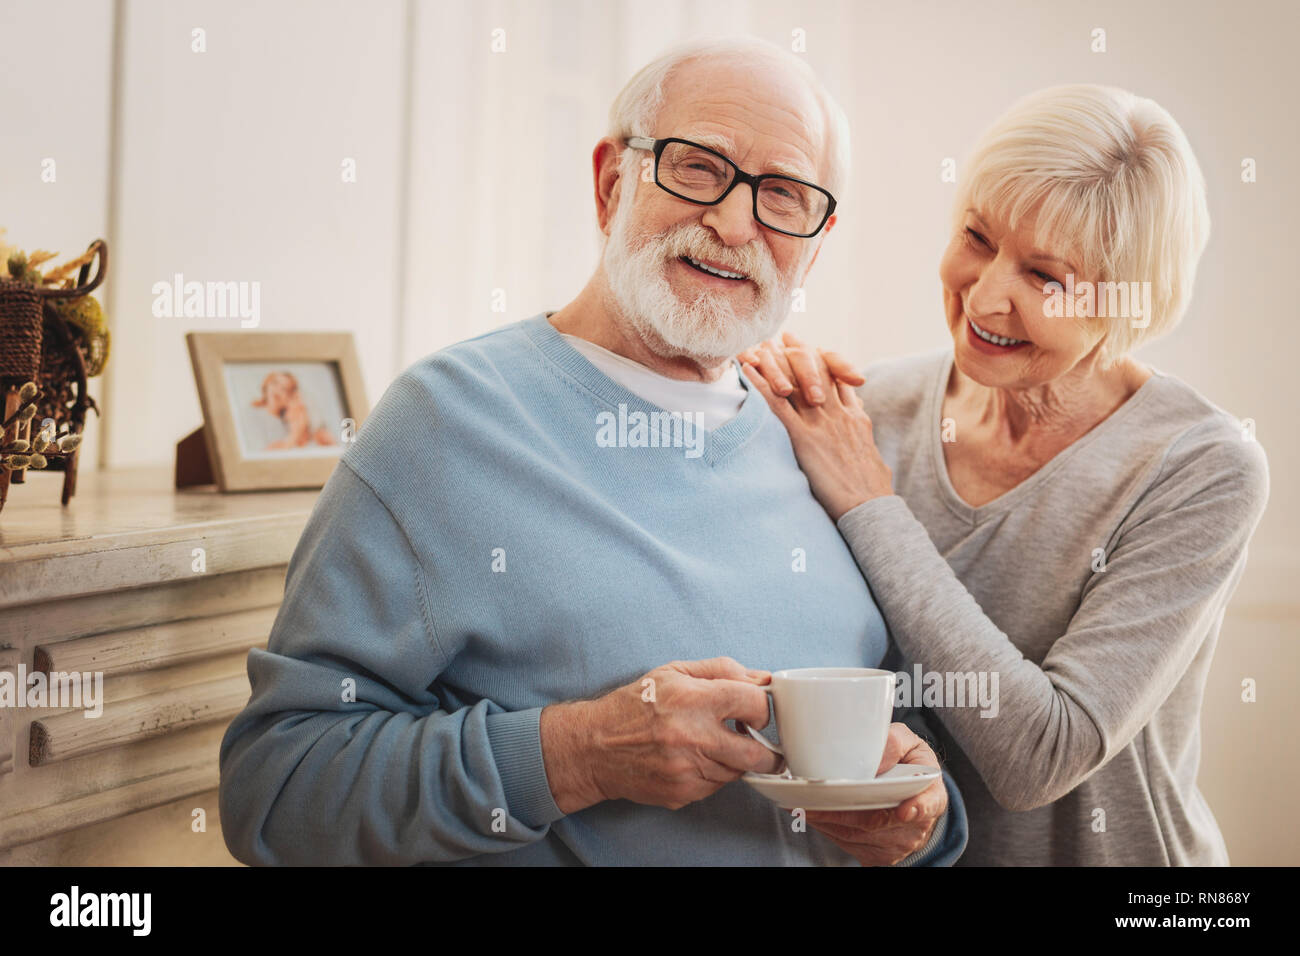 Observant wife. Observant careful wife feeling respected while bringing some hot tea for her loving smiling man - Stock Image